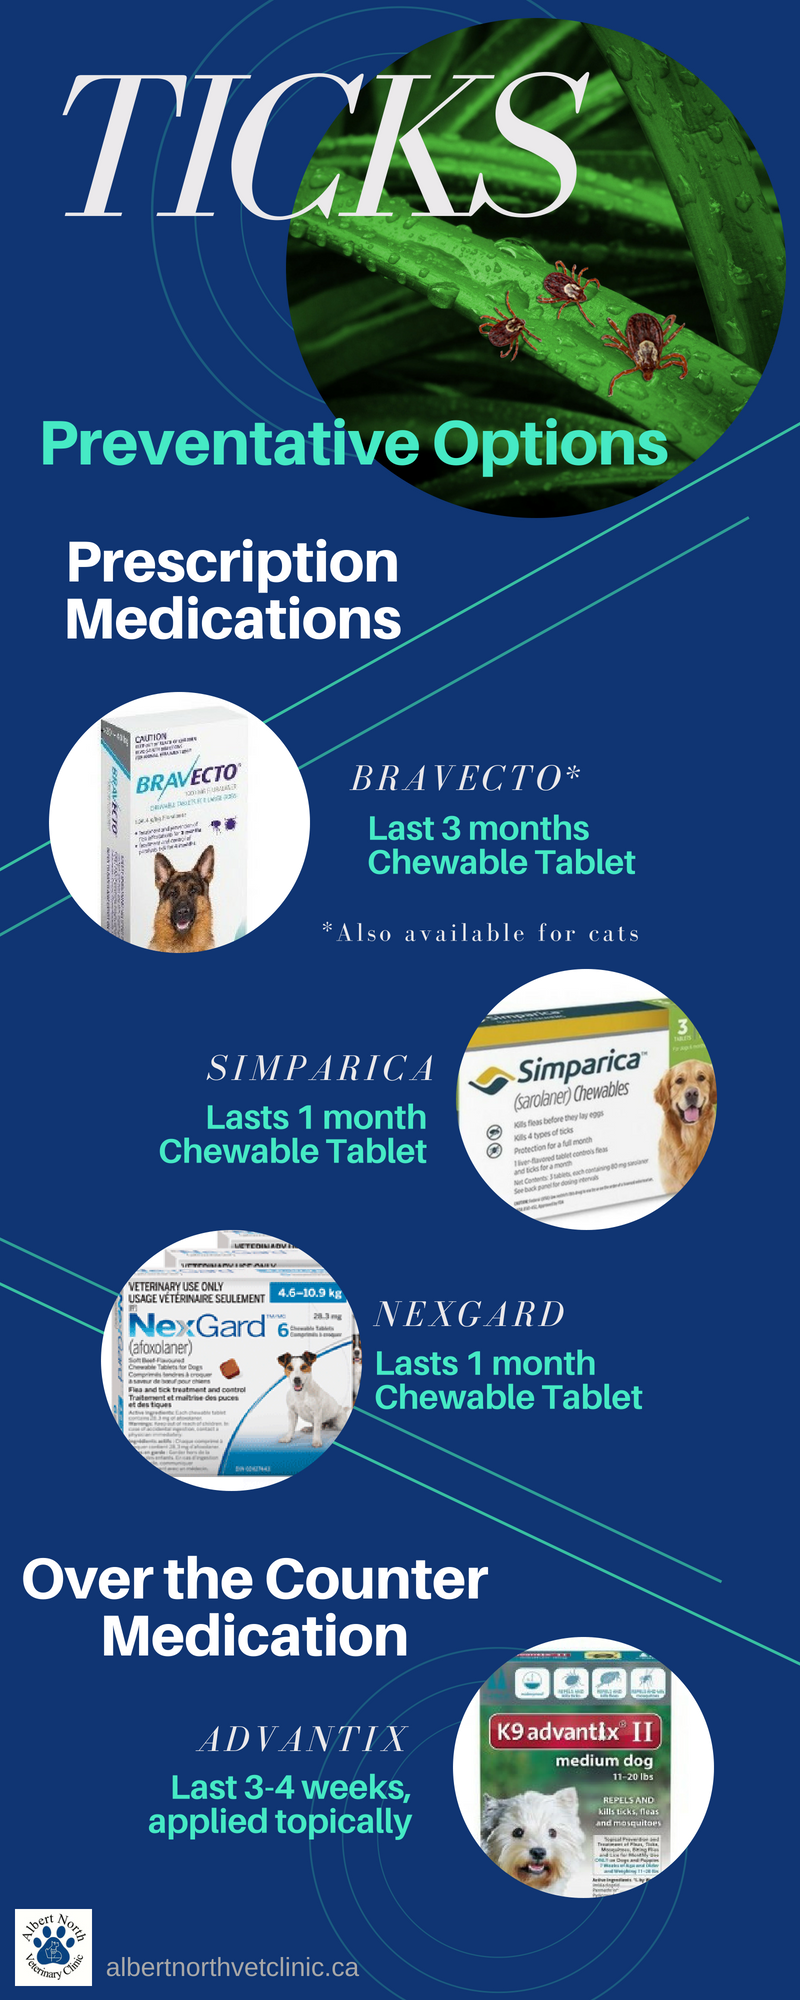 Know the options available to you to treat your dog